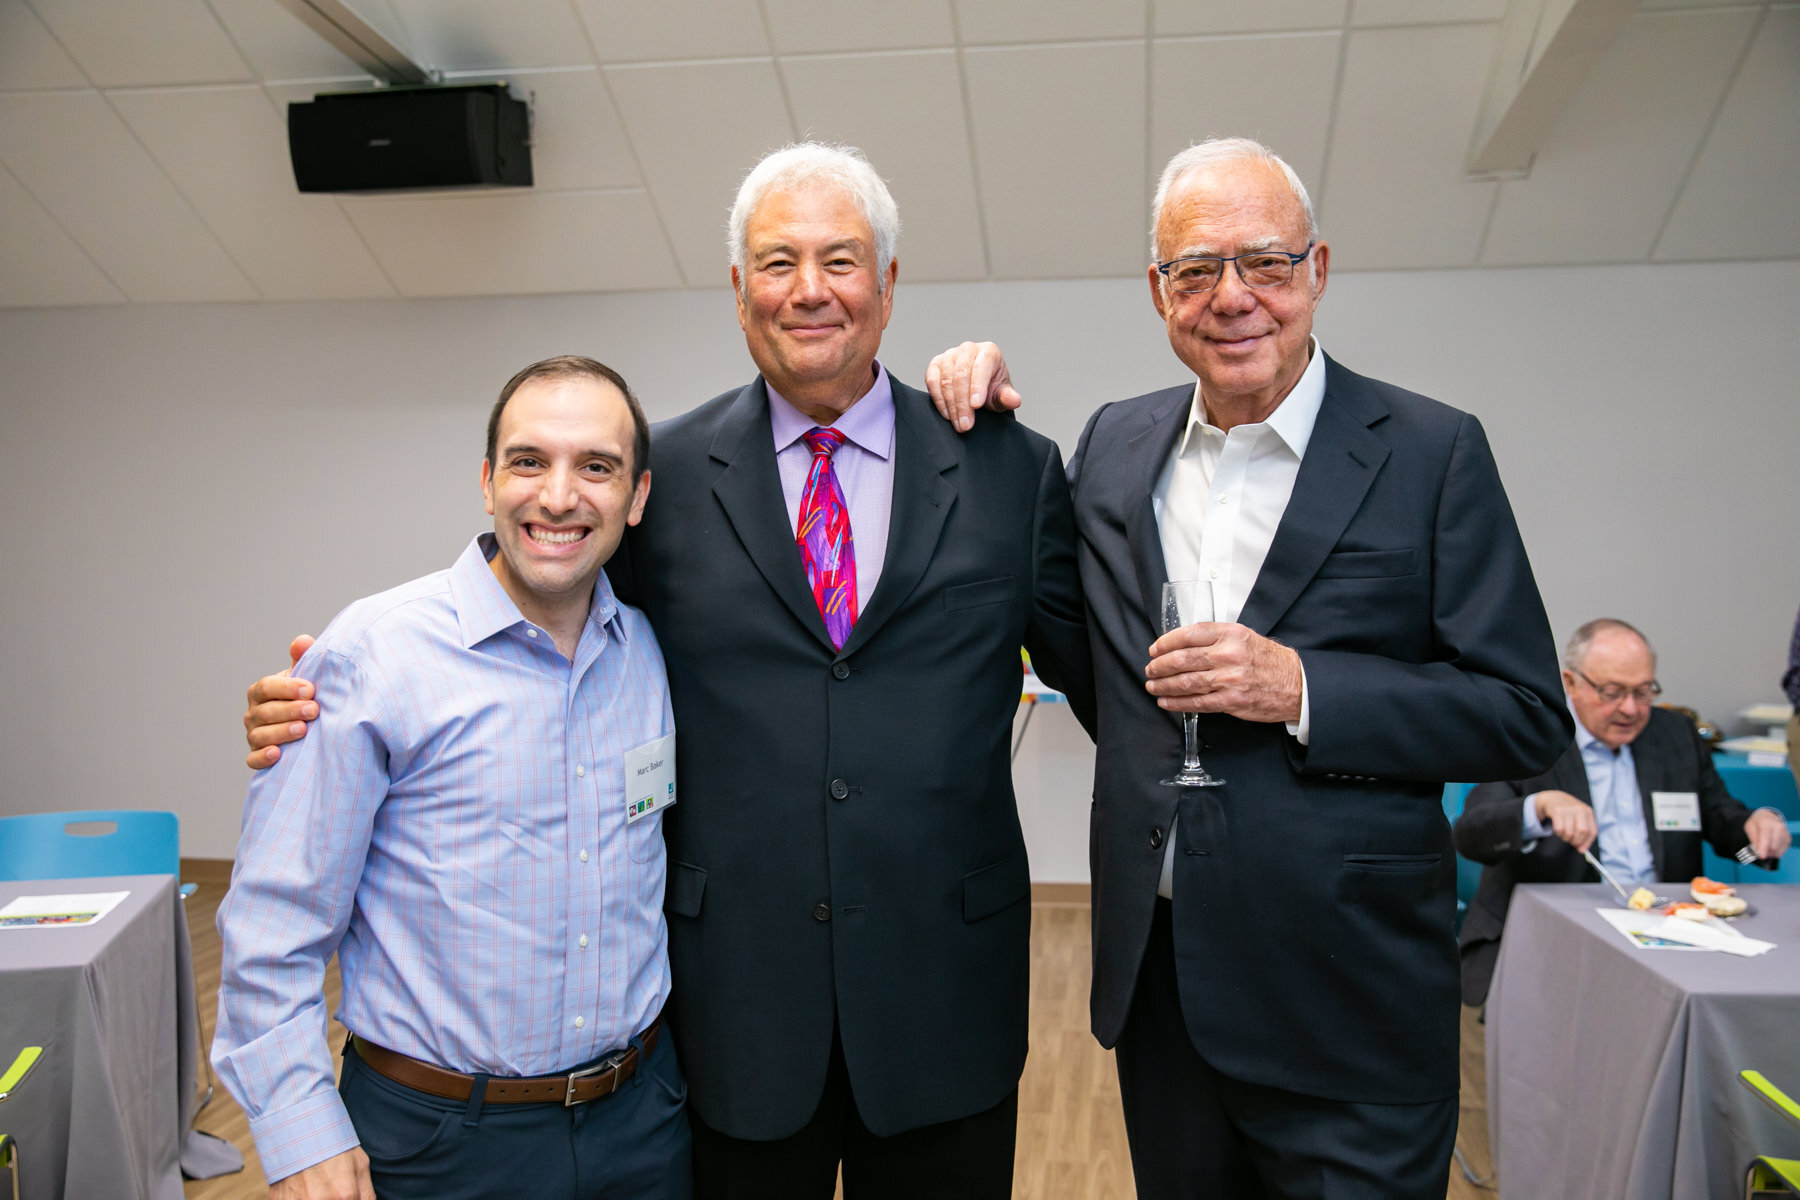 Pictured with Combined Jewish Philanthropies President and CEO  Rabbi Marc Baker  and JCC Greater Boston President and CEO  Mark Sokoll  at the opening of The Winn Family & Wellness Center